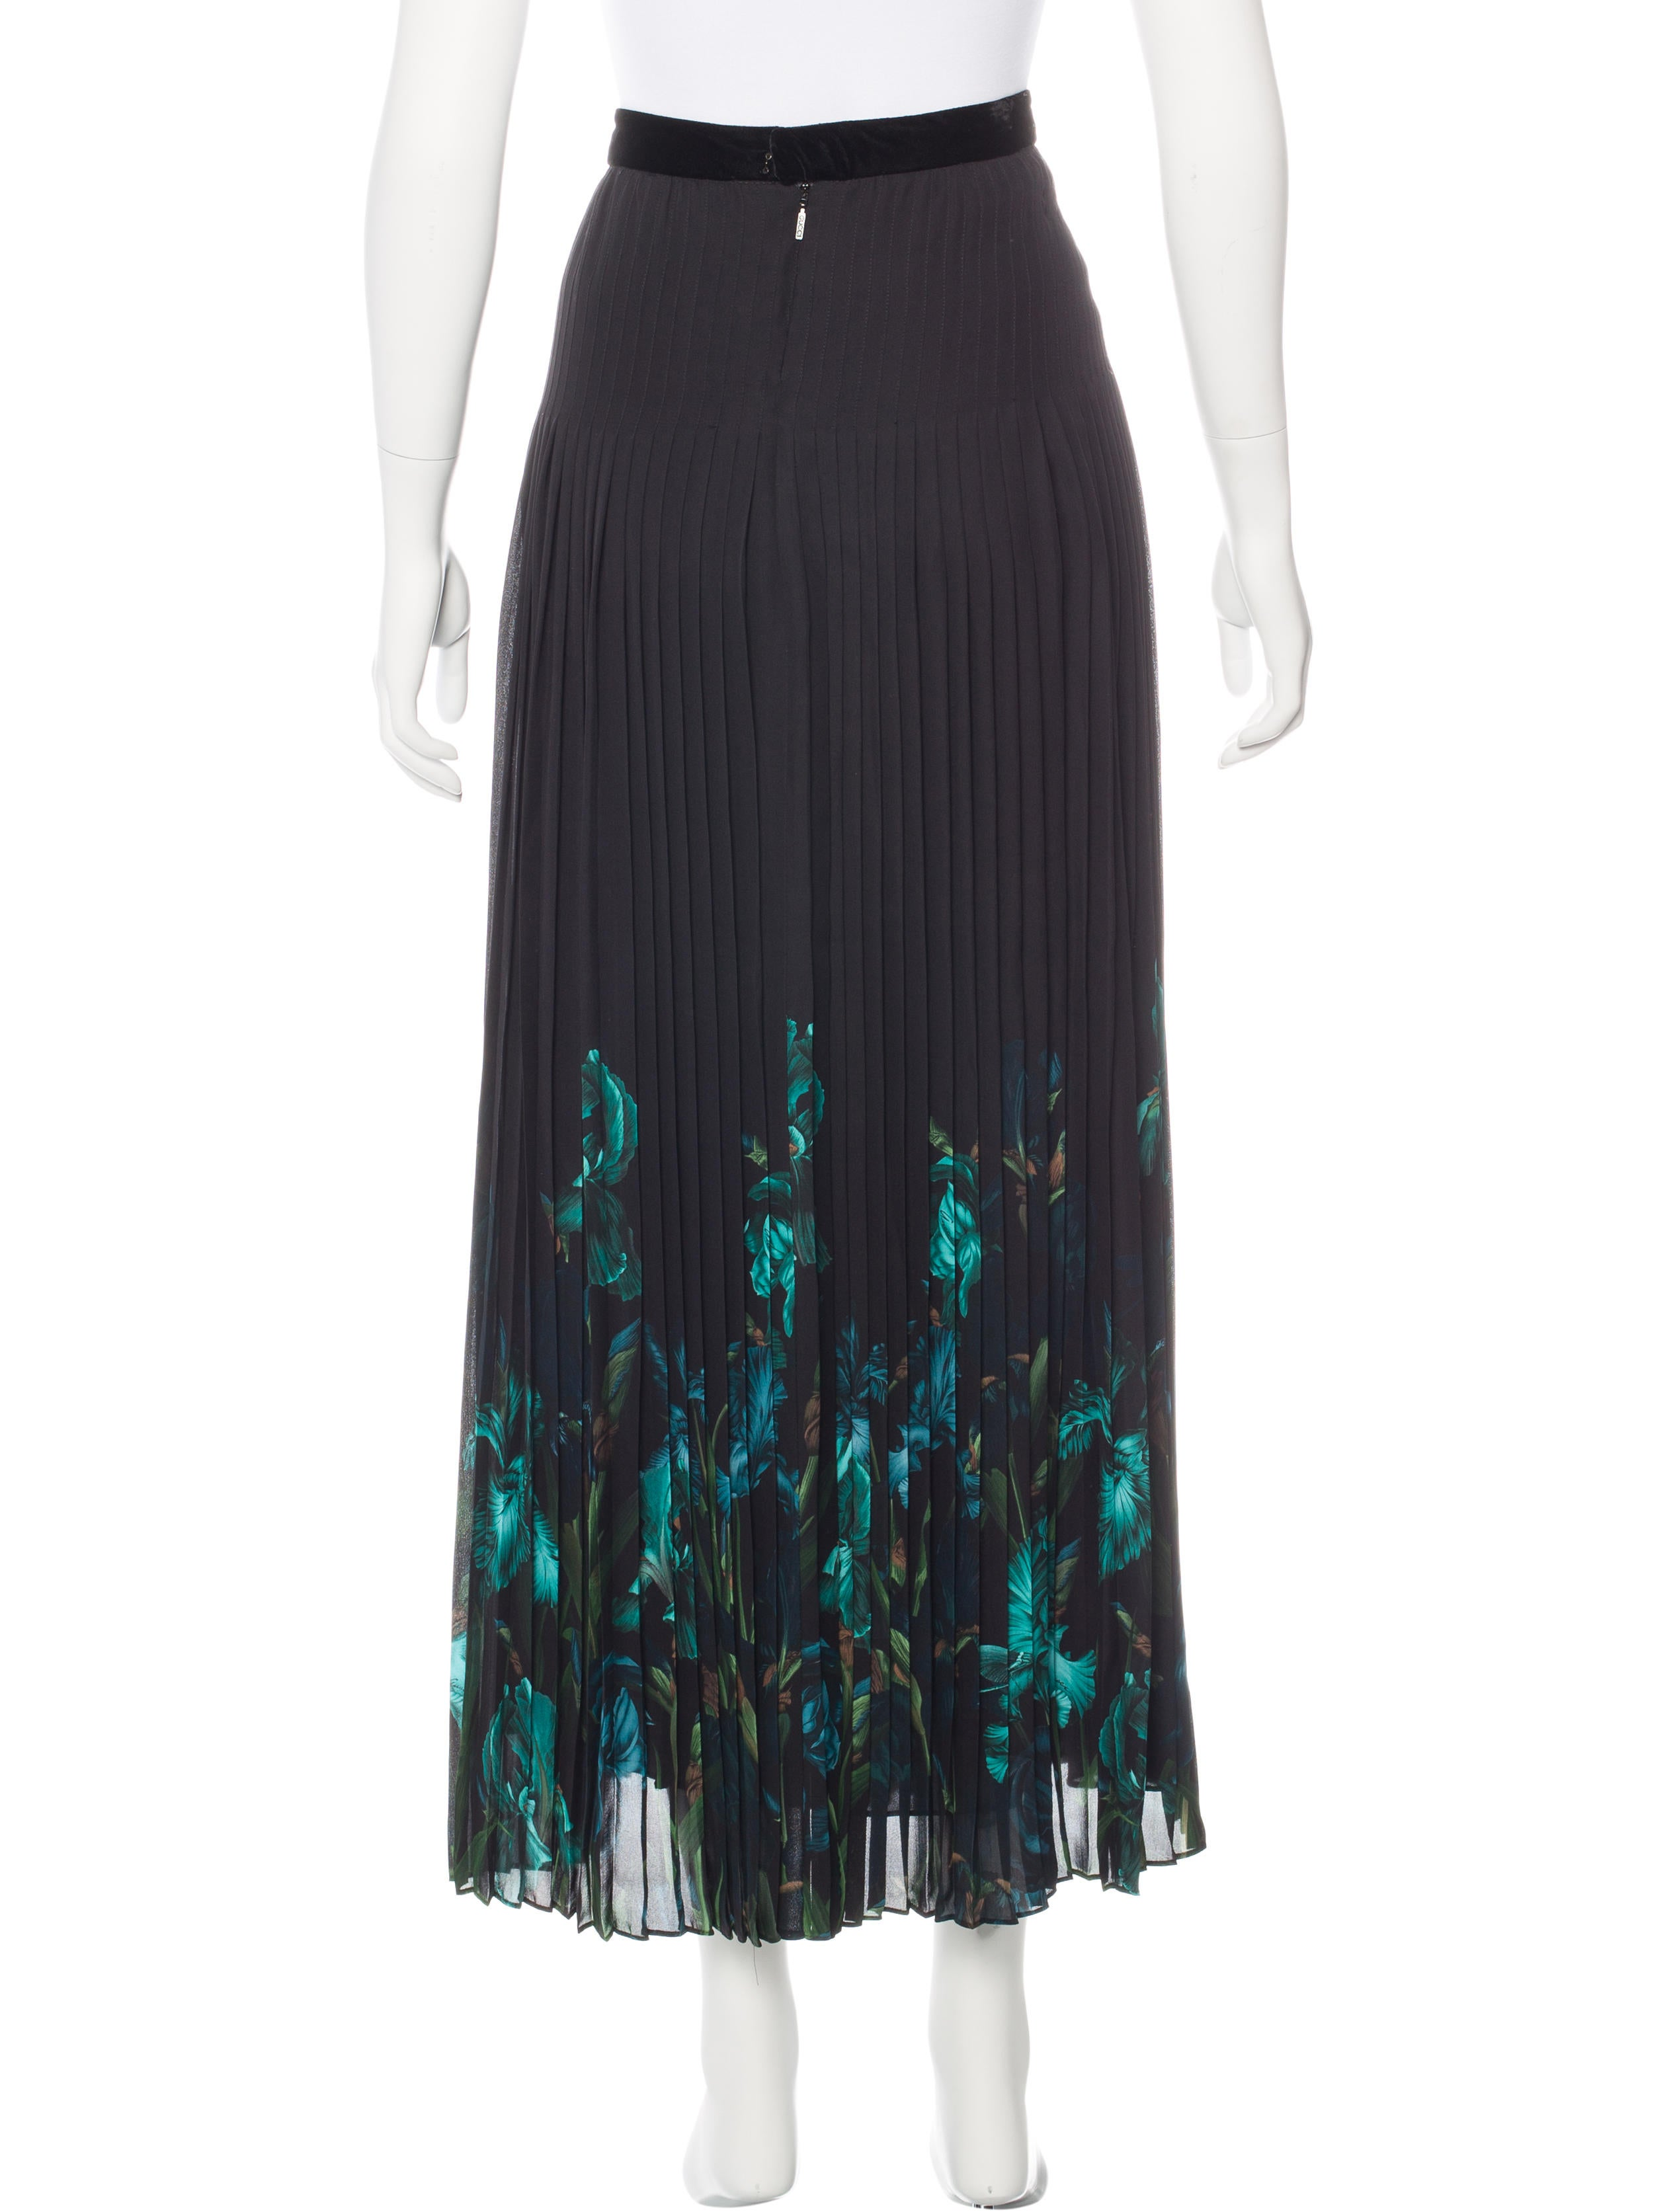 Gucci Silk Pleated Skirt - Clothing - GUC143513 | The RealReal